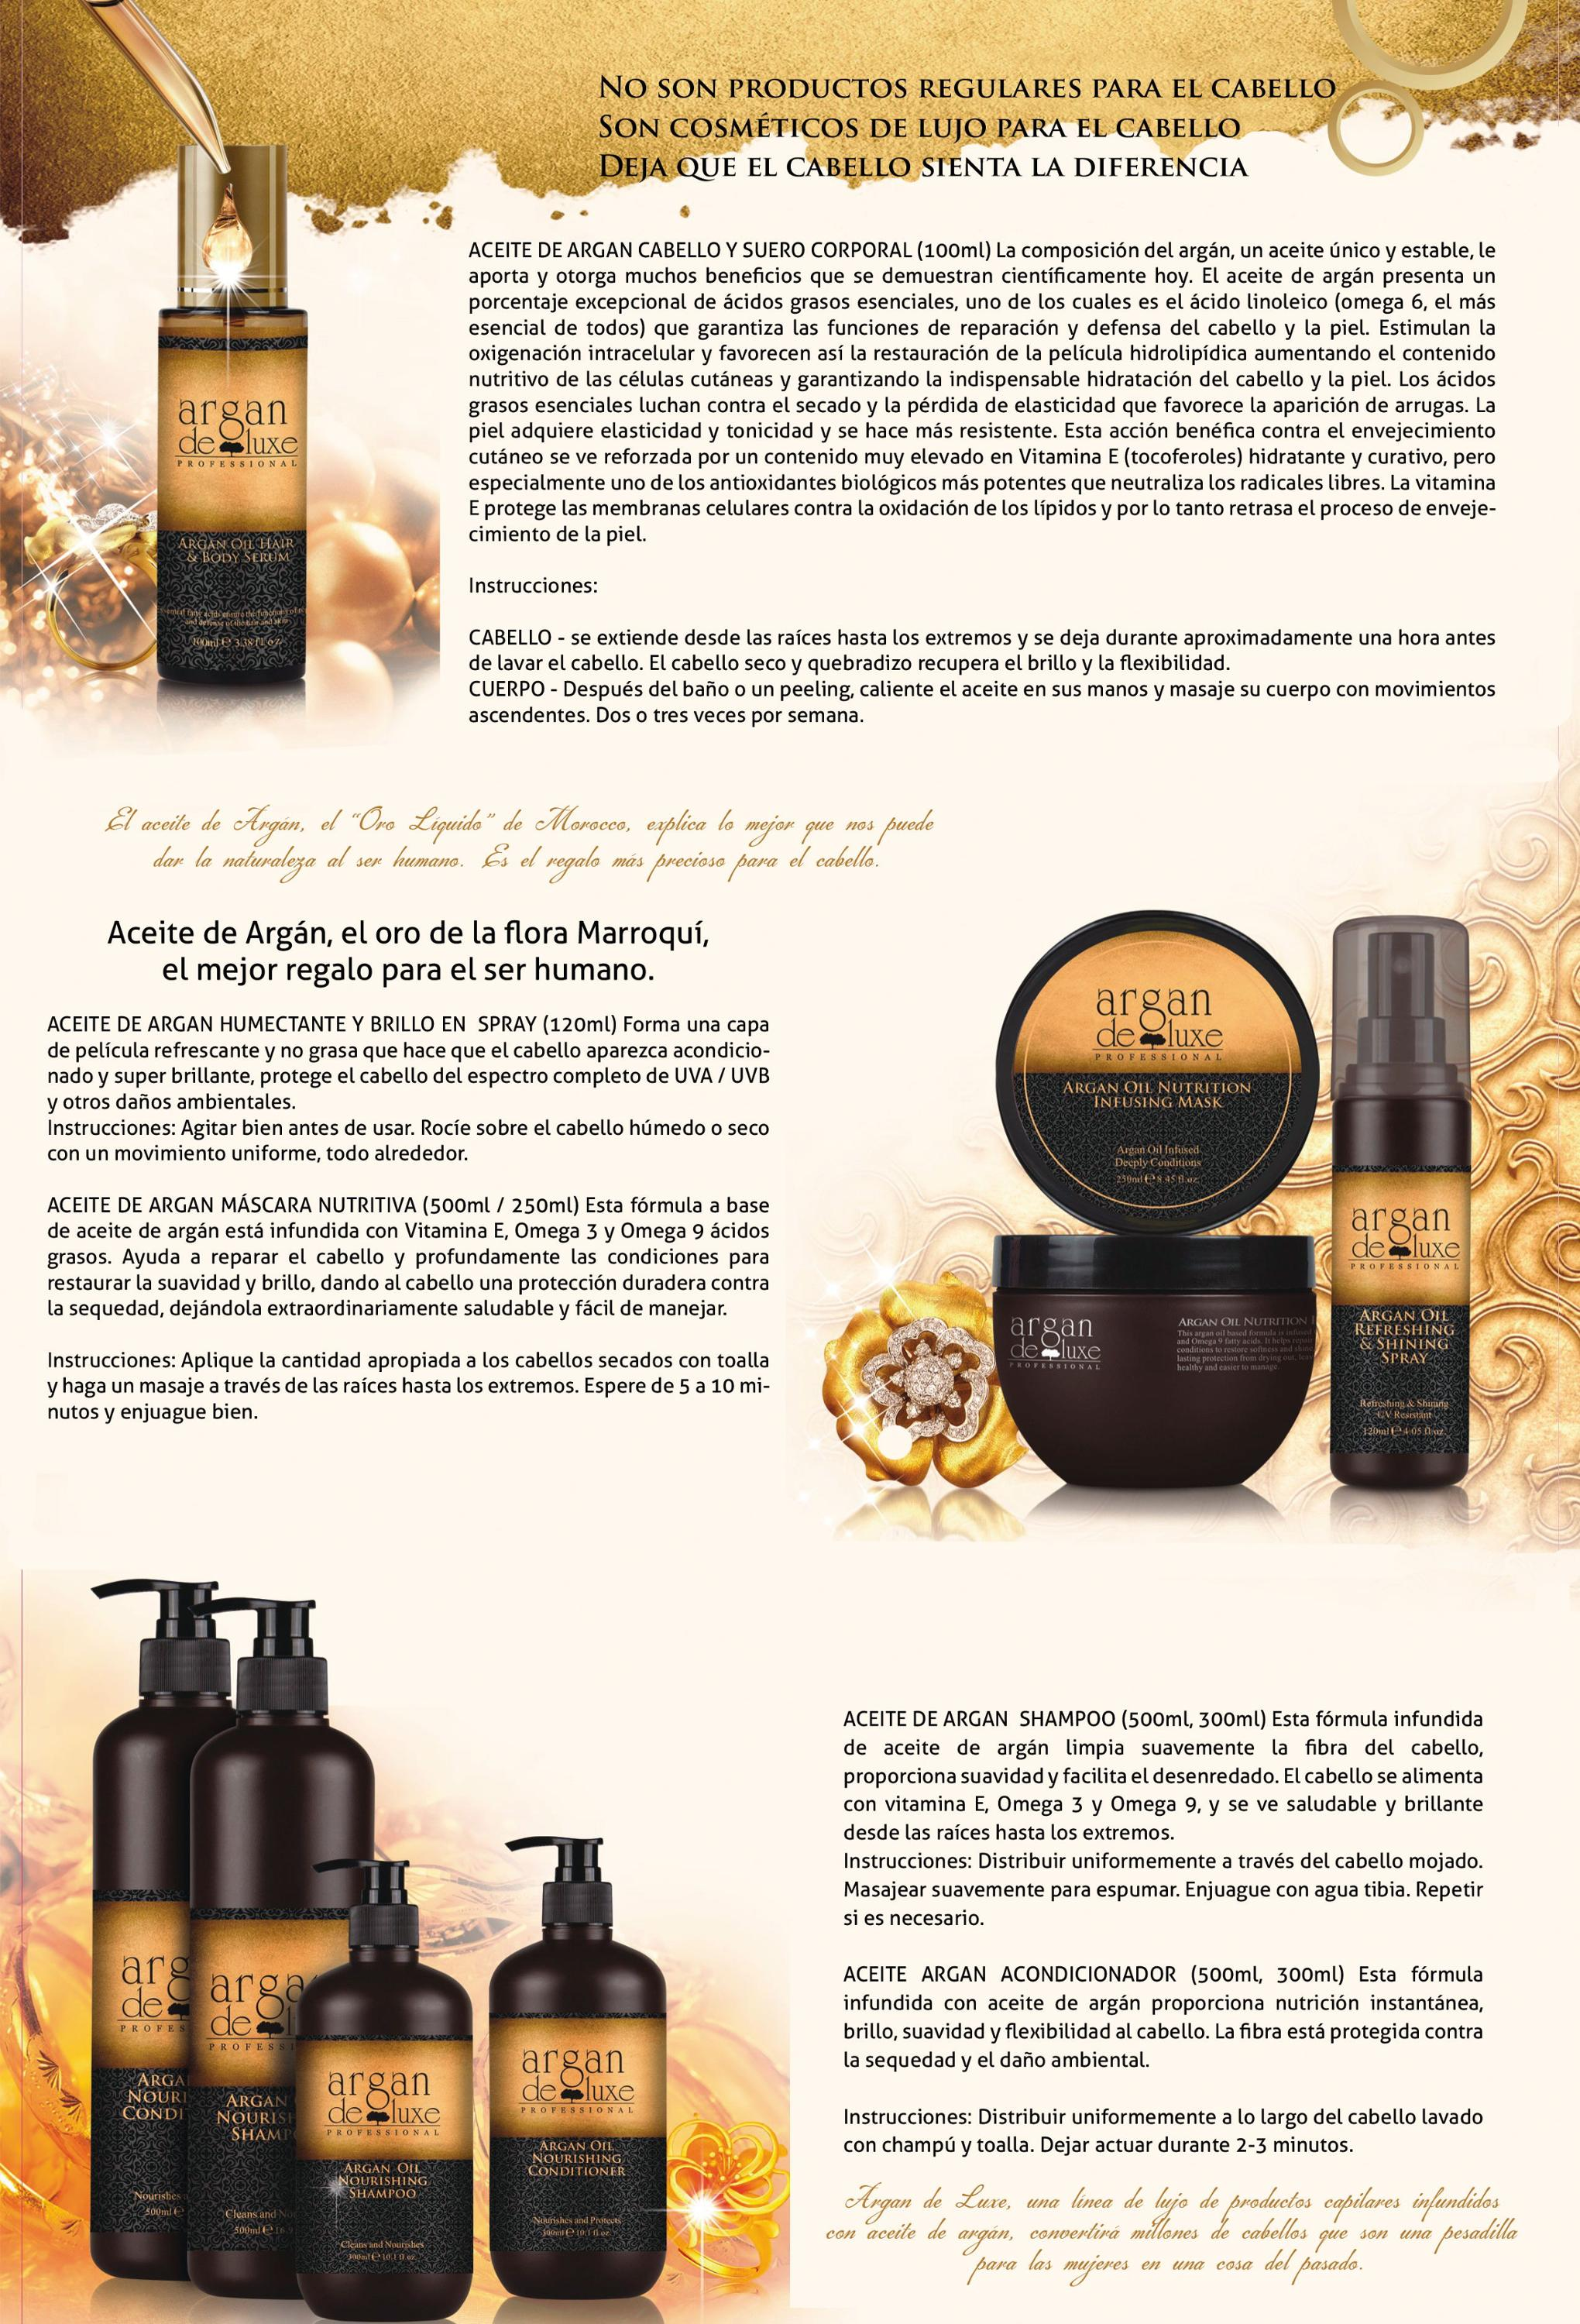 New Original Argan Deluxe shampoo champu argan oil